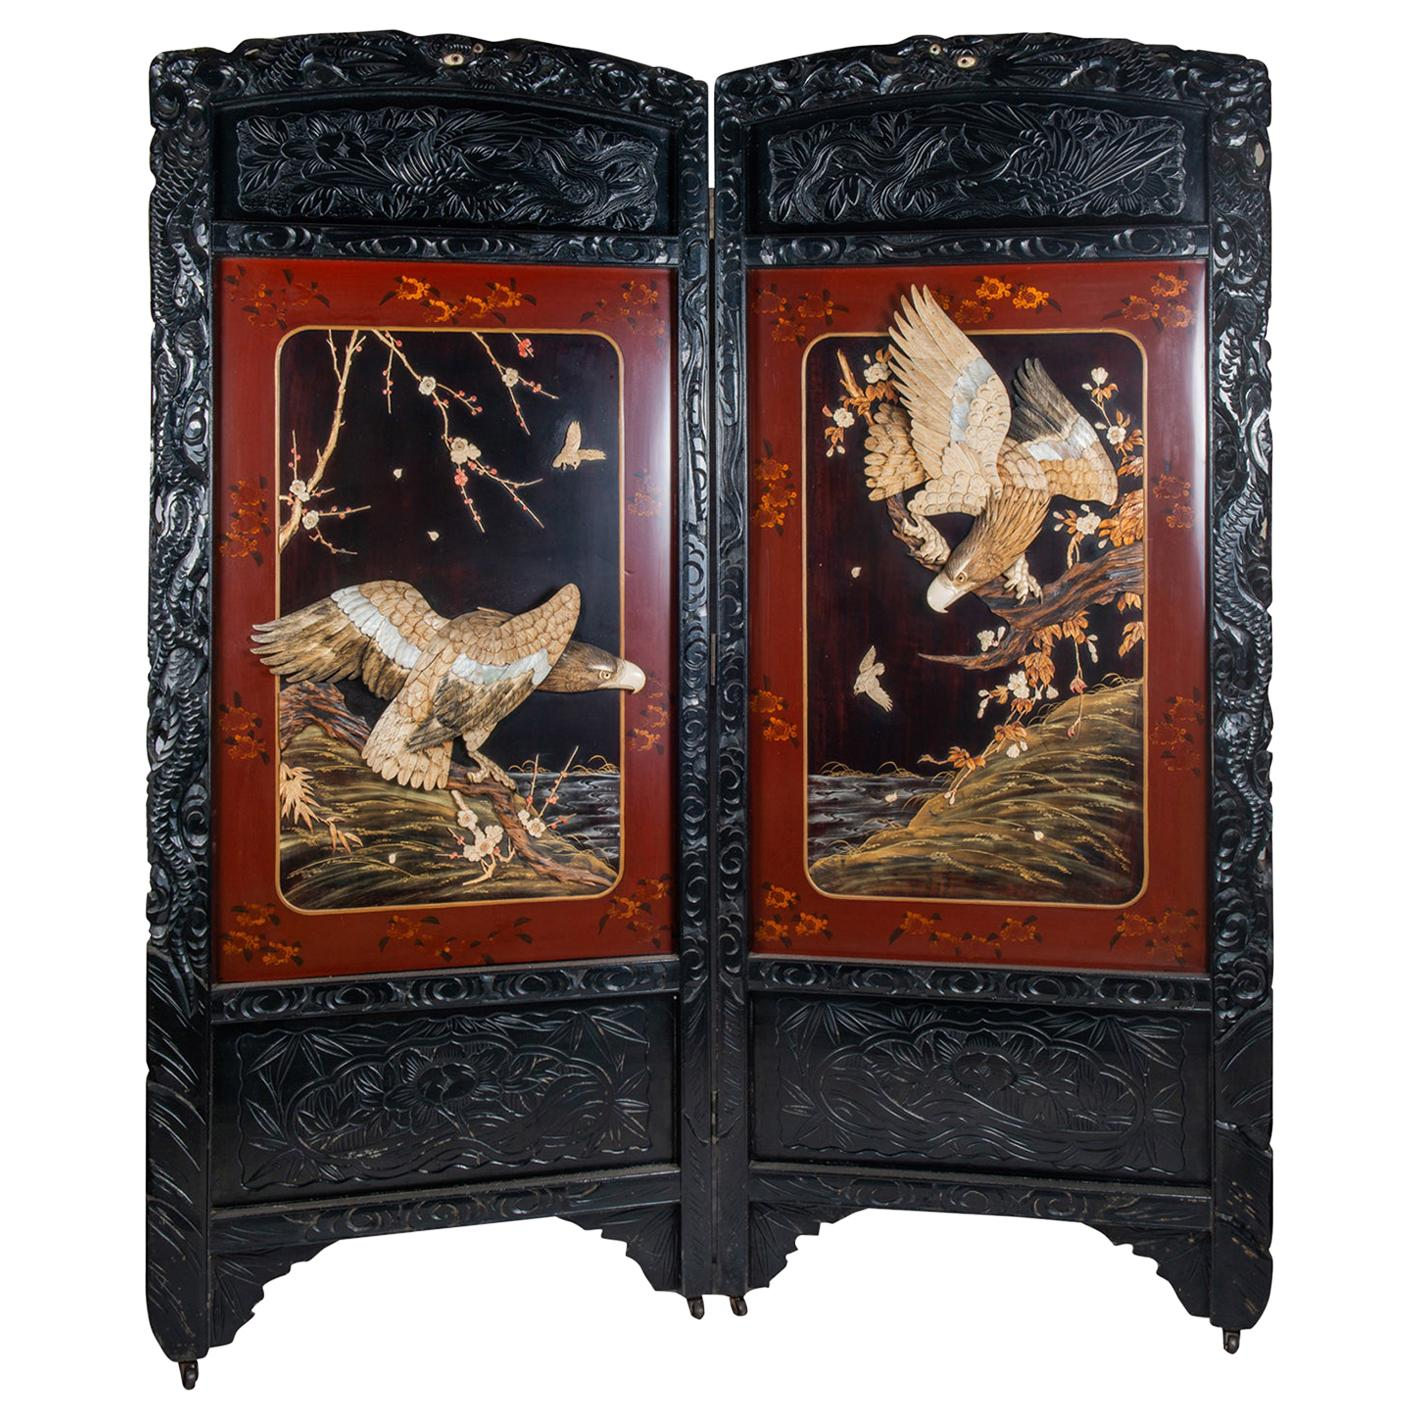 19th Century Japanese Two Fold Screen